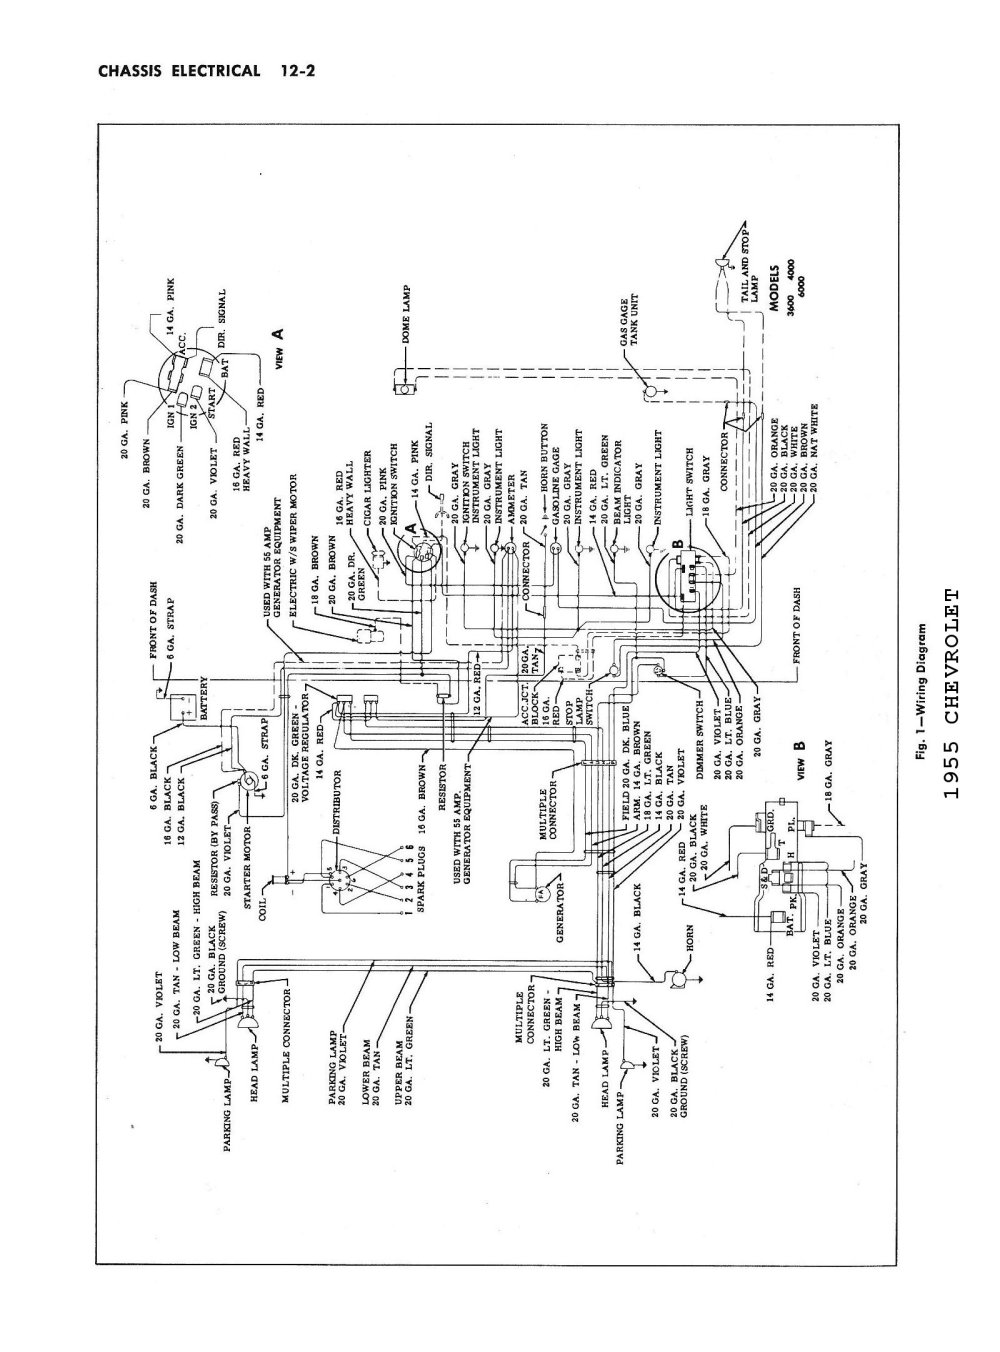 medium resolution of 1958 chevrolet steering column wiring